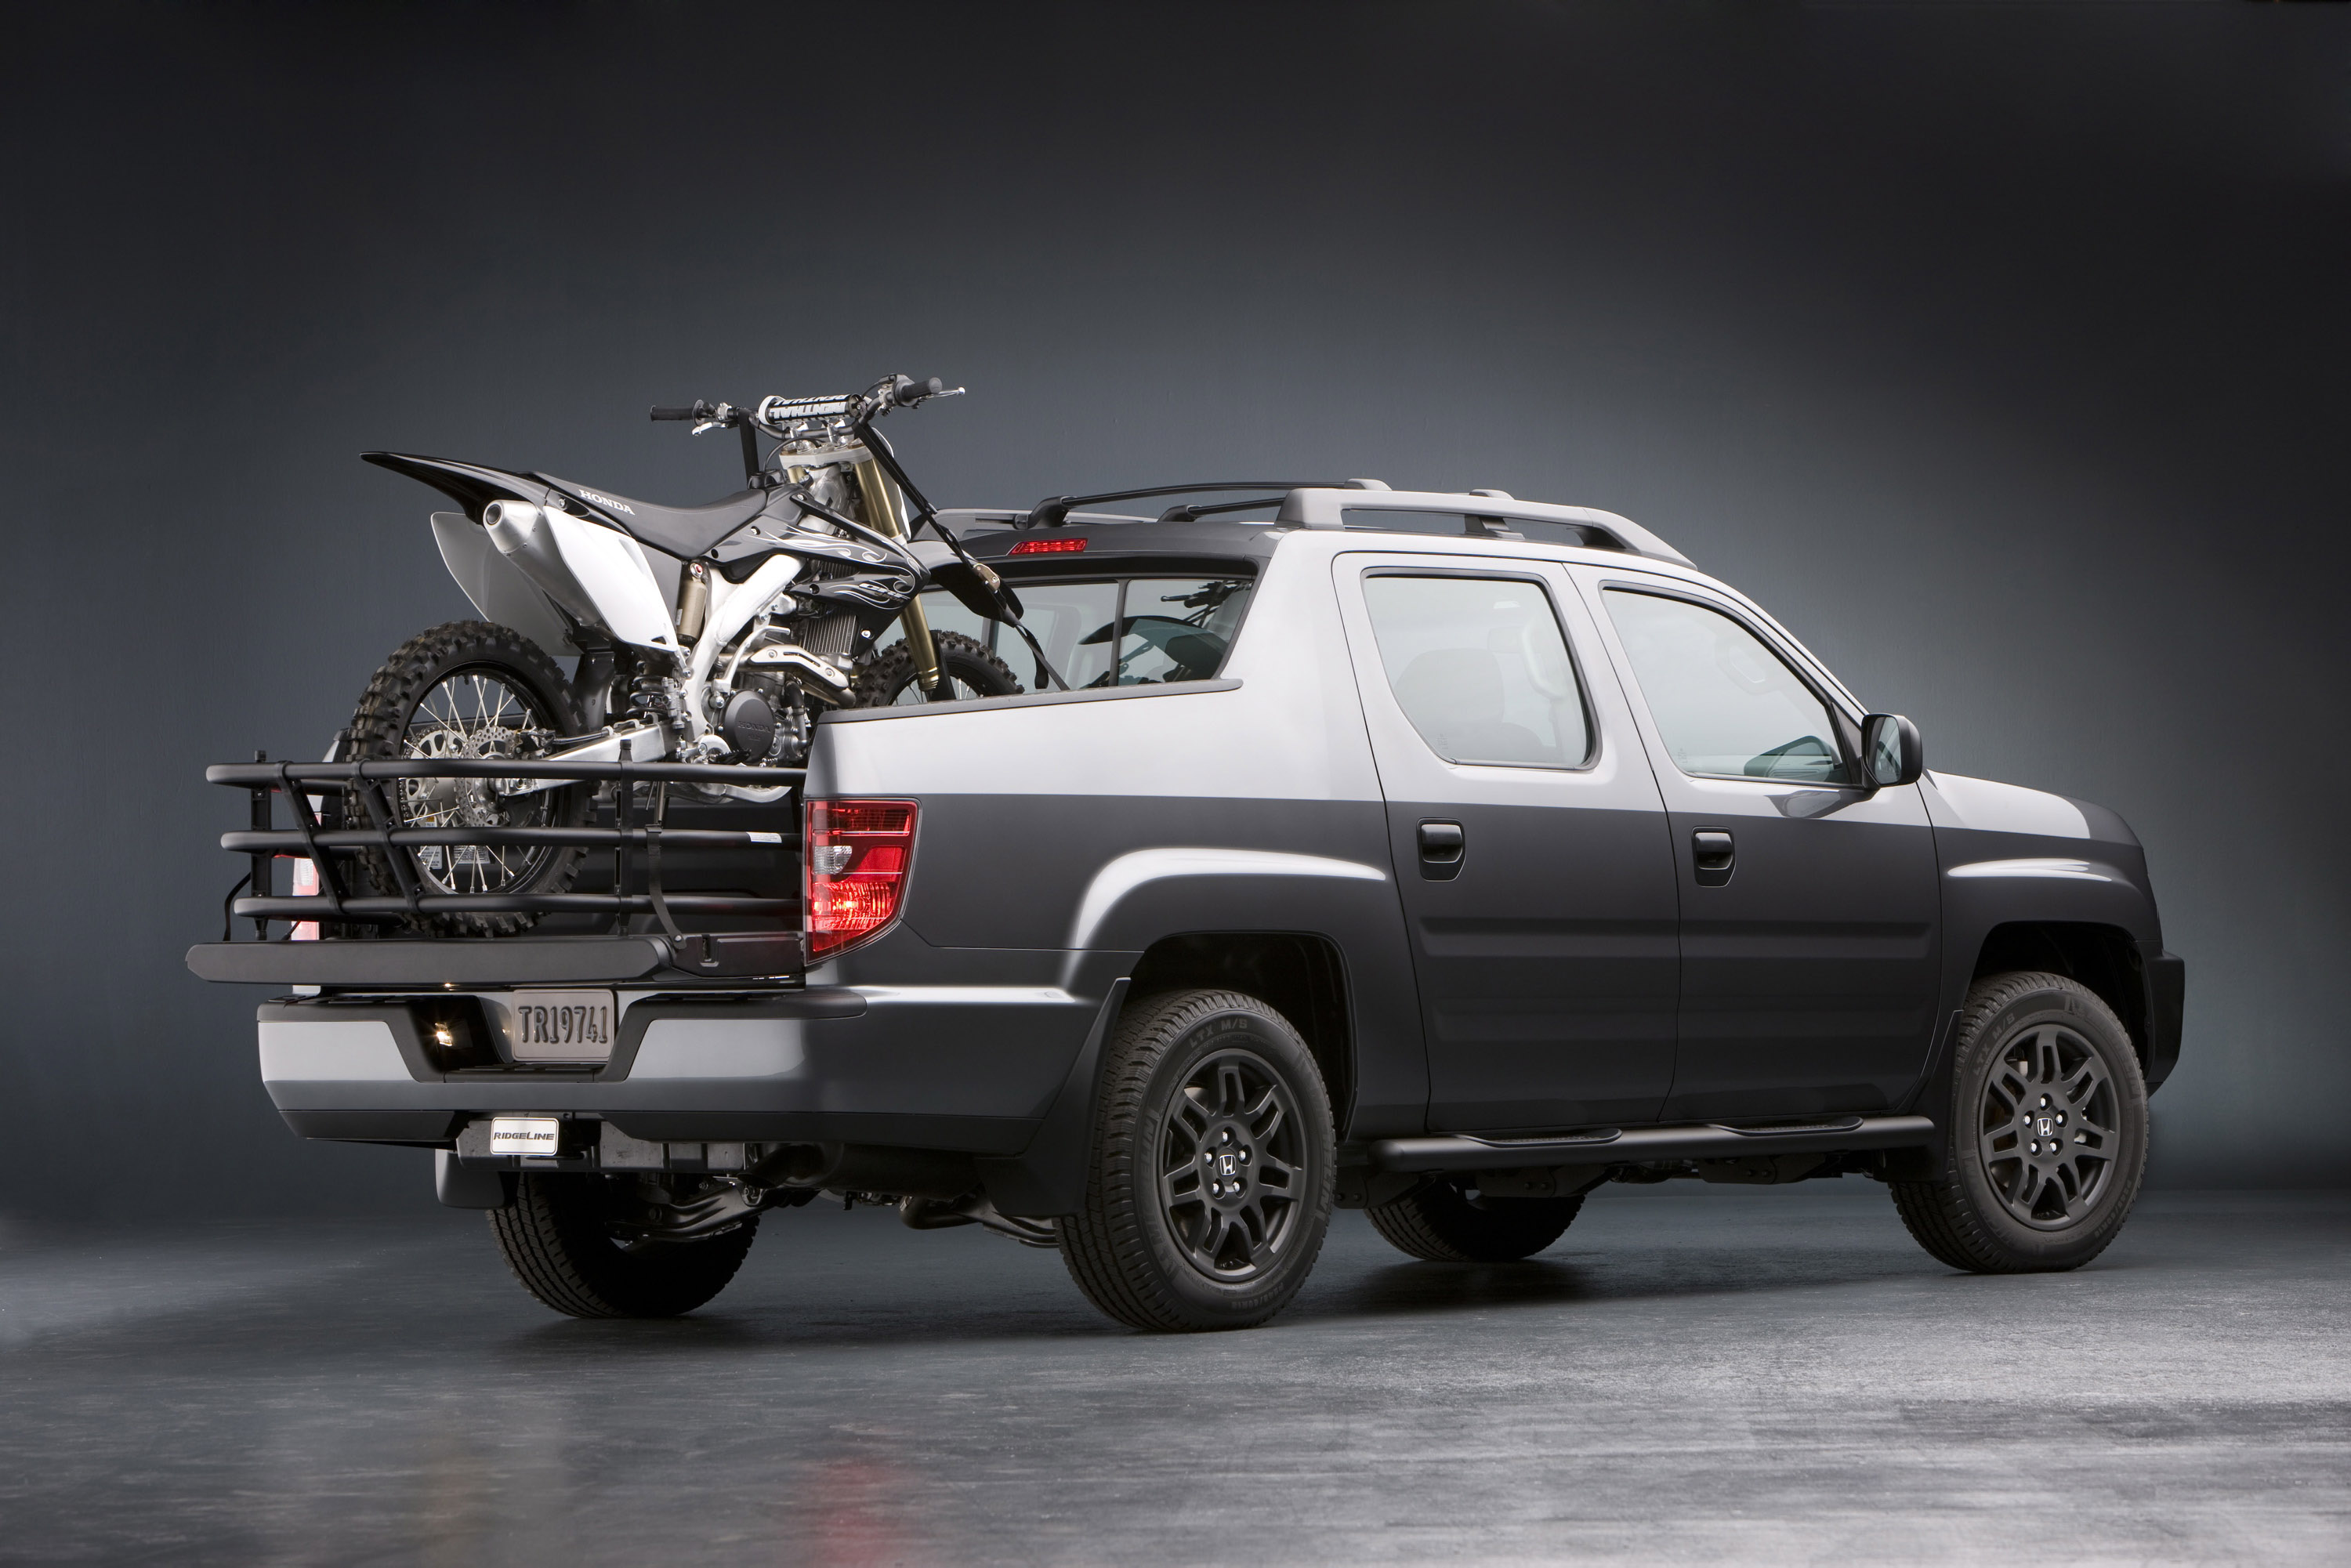 honda reveals accessory concepts for civic and ridgeline at 2008 sema show